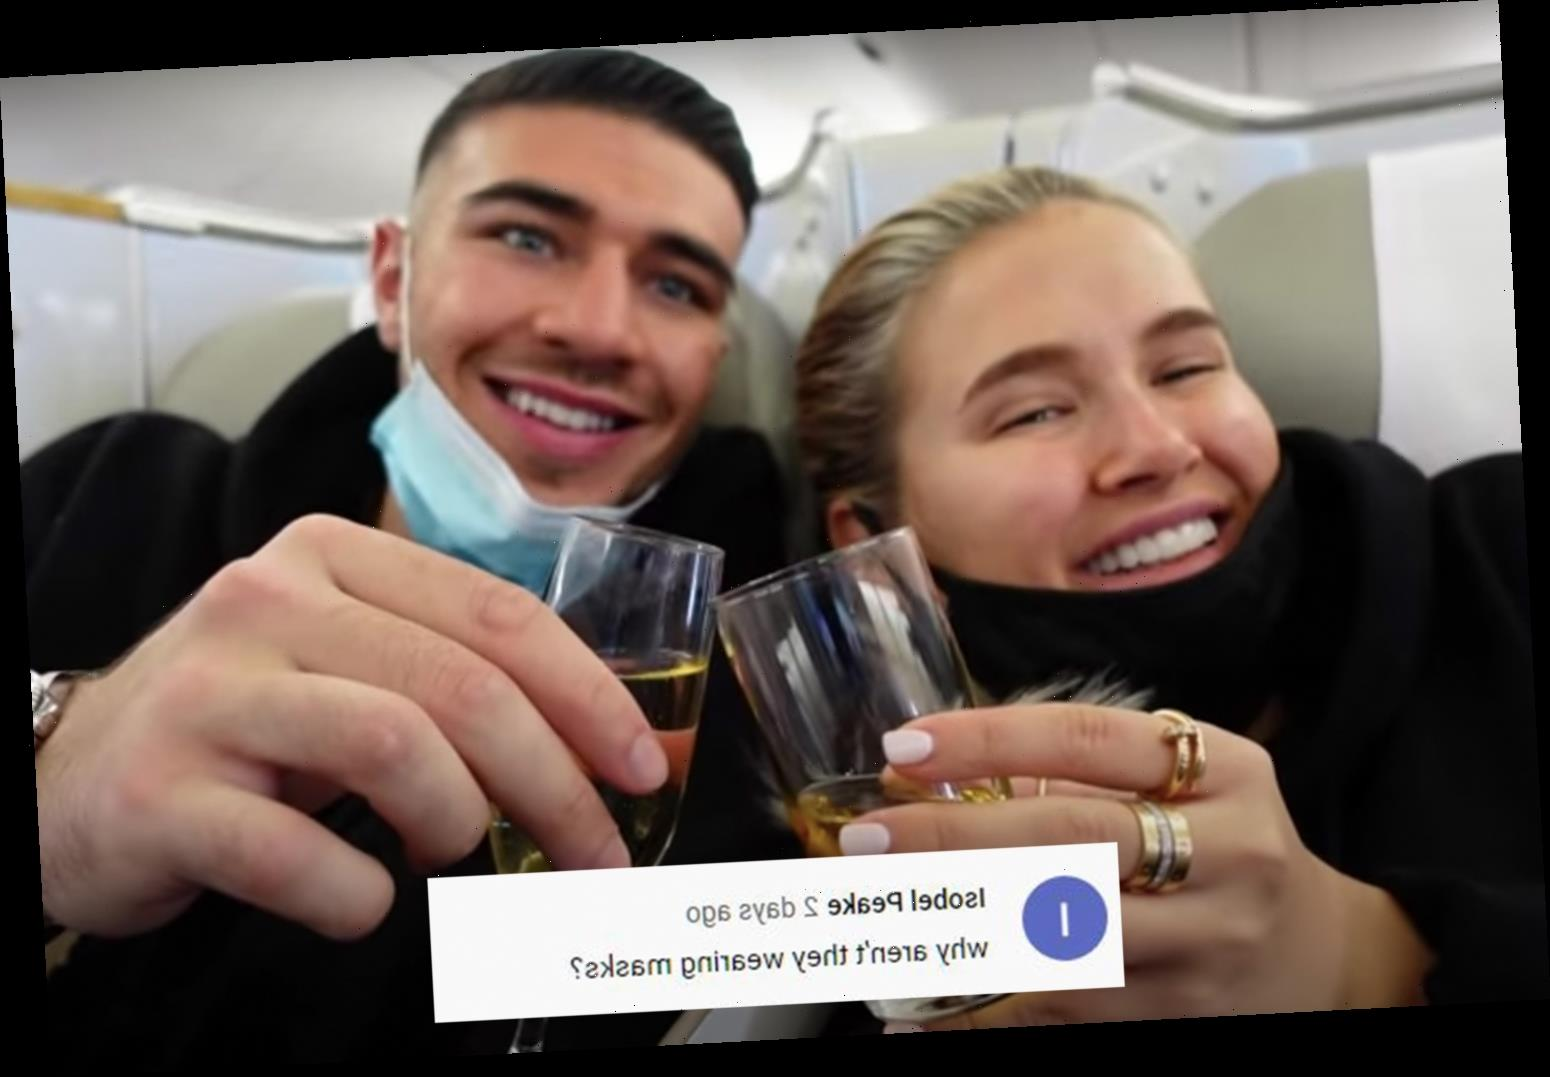 Molly-Mae Hague and Tommy Fury anger fans by not wearing face masks in Dubai vlog